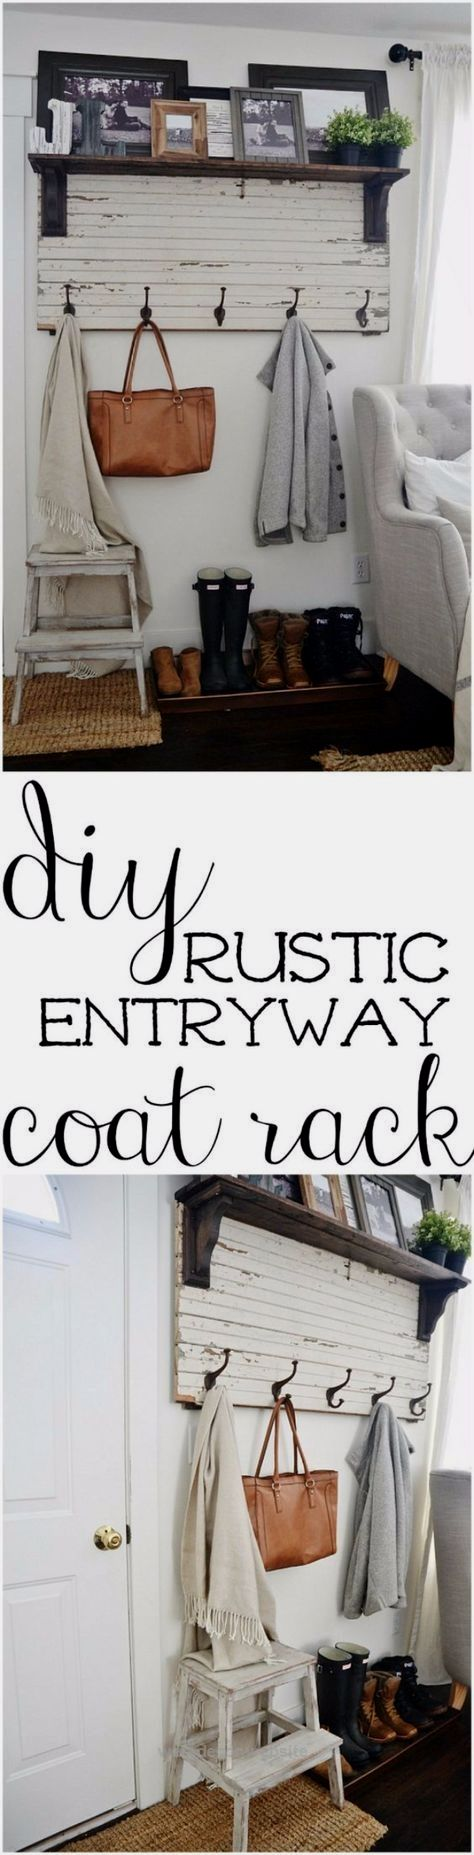 DIY Ideas for Your Entry – DIY Rustic Entryway Coat Rack – Cool and Creative Hom… DIY Ideas for Your Entry – DIY Rustic Entryway Coat Rack – Cool and Creative Home Decor or Entryway and Hall. Modern, Rustic and Classic Decor on  ..  http://www.wersdecor.website/2017/05/04/diy-ideas-for-your-entry-diy-rustic-entryway-coat-rack-cool-and-creative-hom/